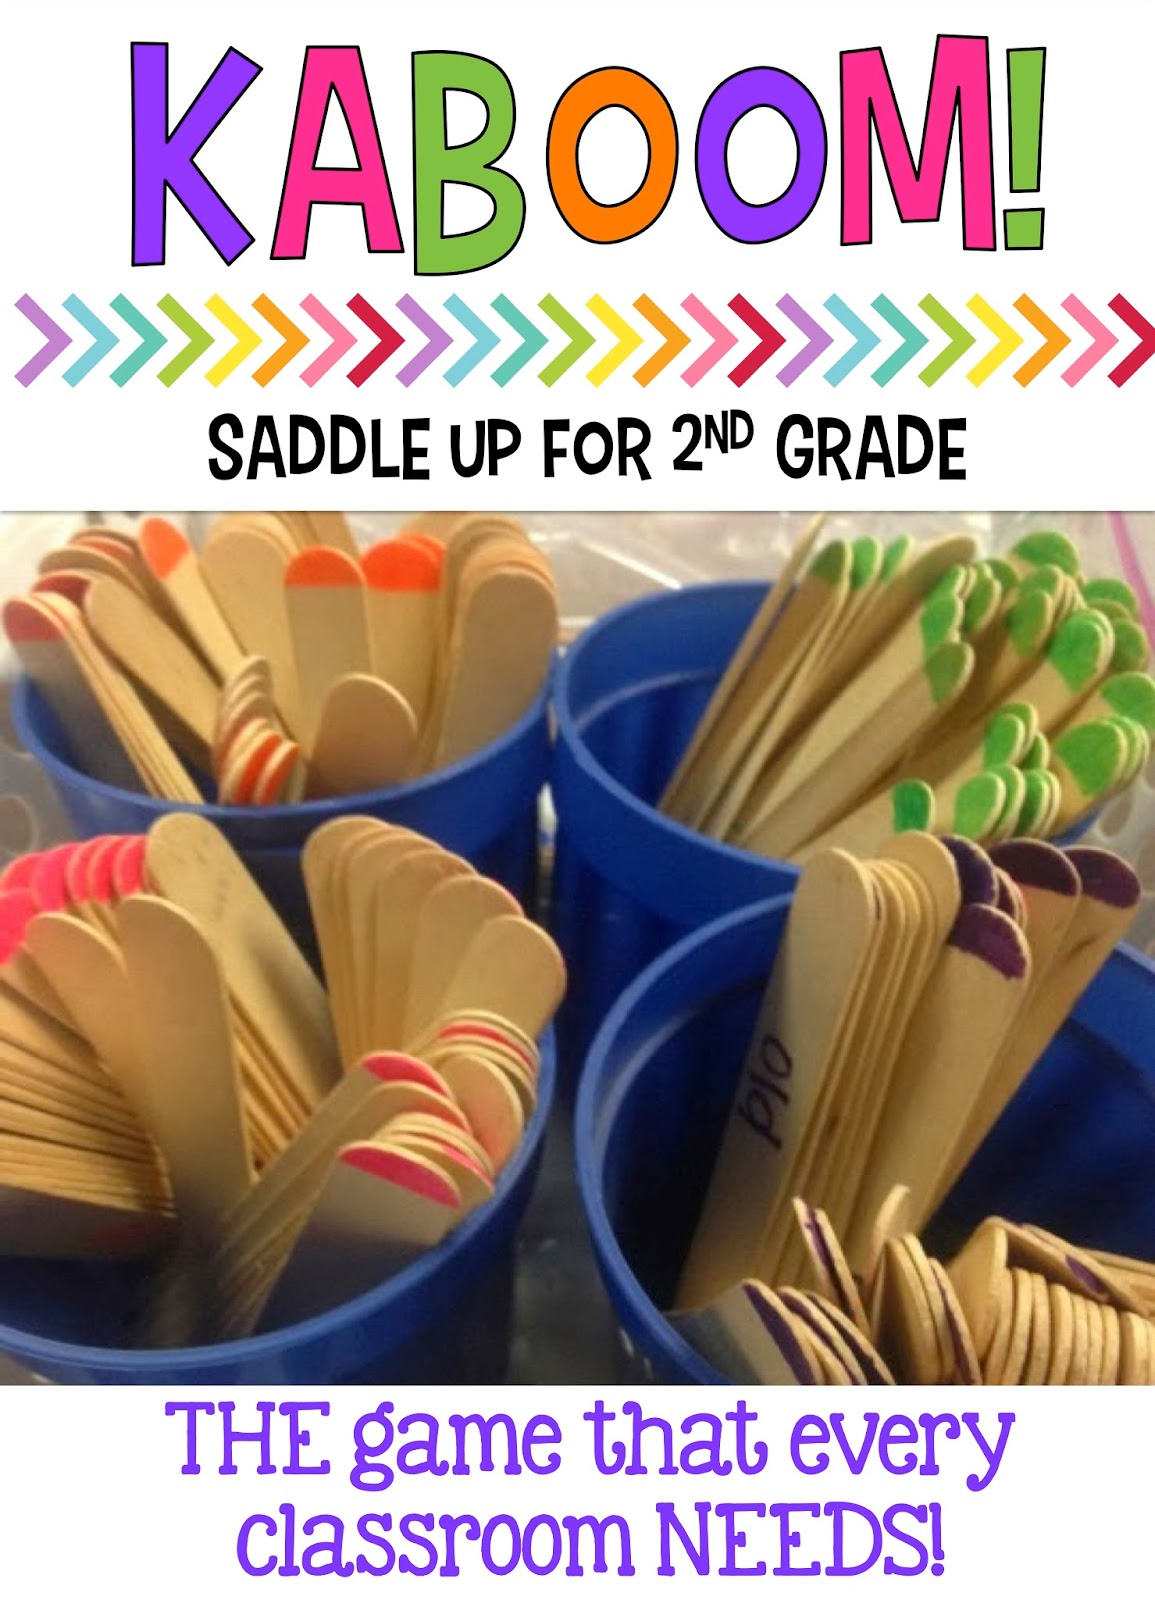 KABOOM! The Game that Every Classroom Needs - Saddle up for Second Grade